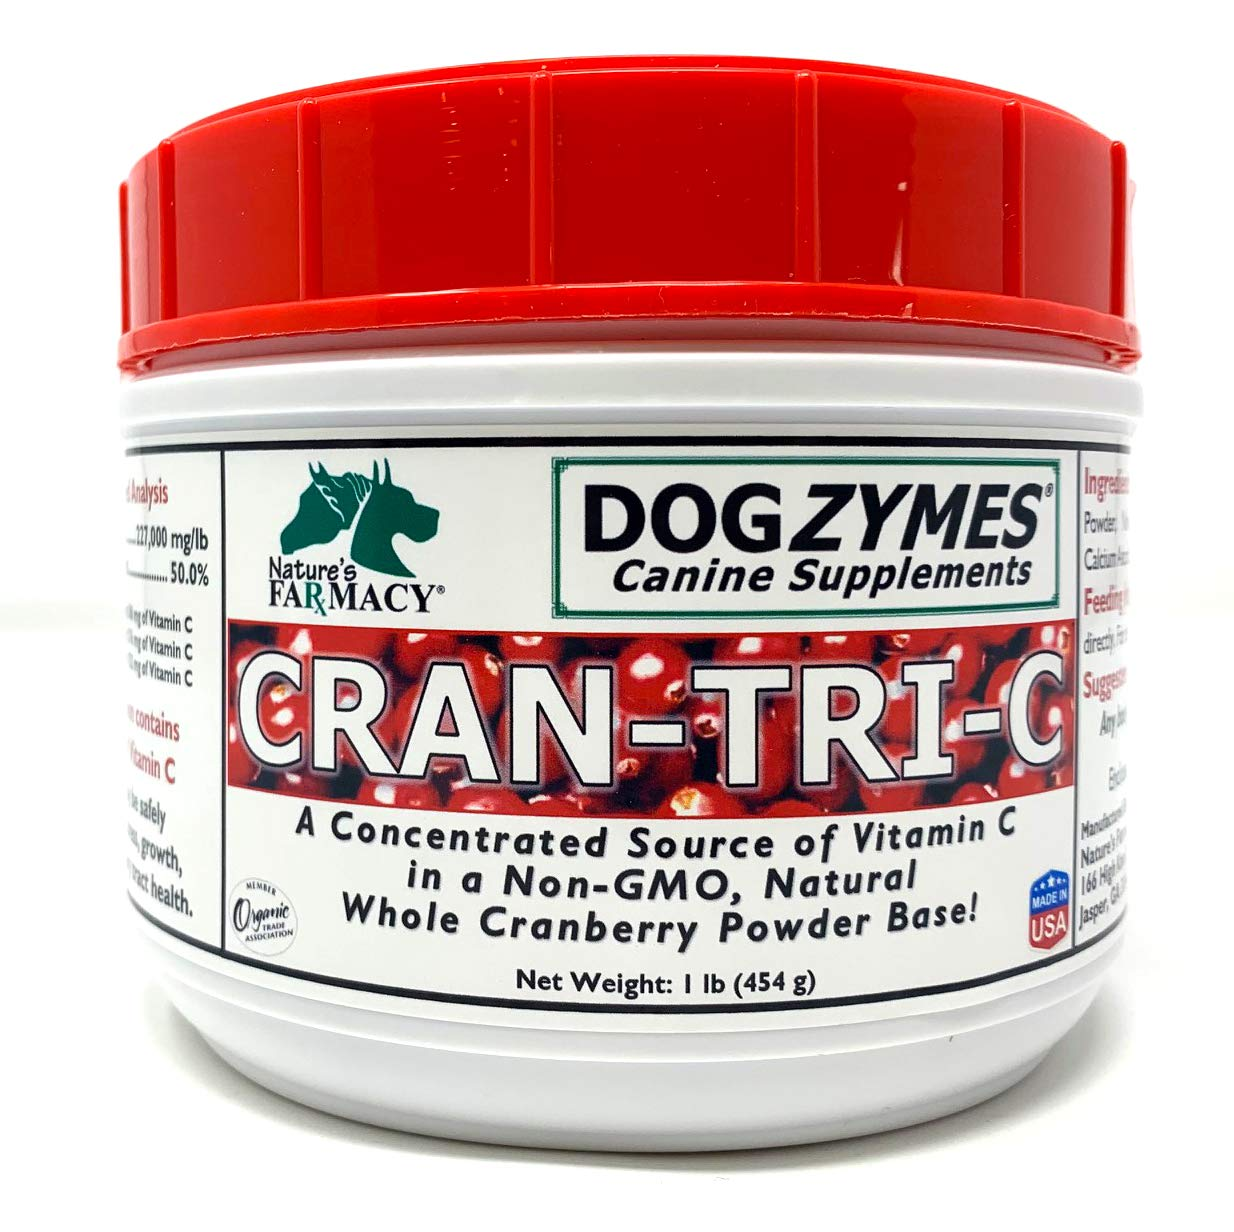 Dogzymes Cran Tri C Urinary Tract Support (1 Pound) by Dogzymes